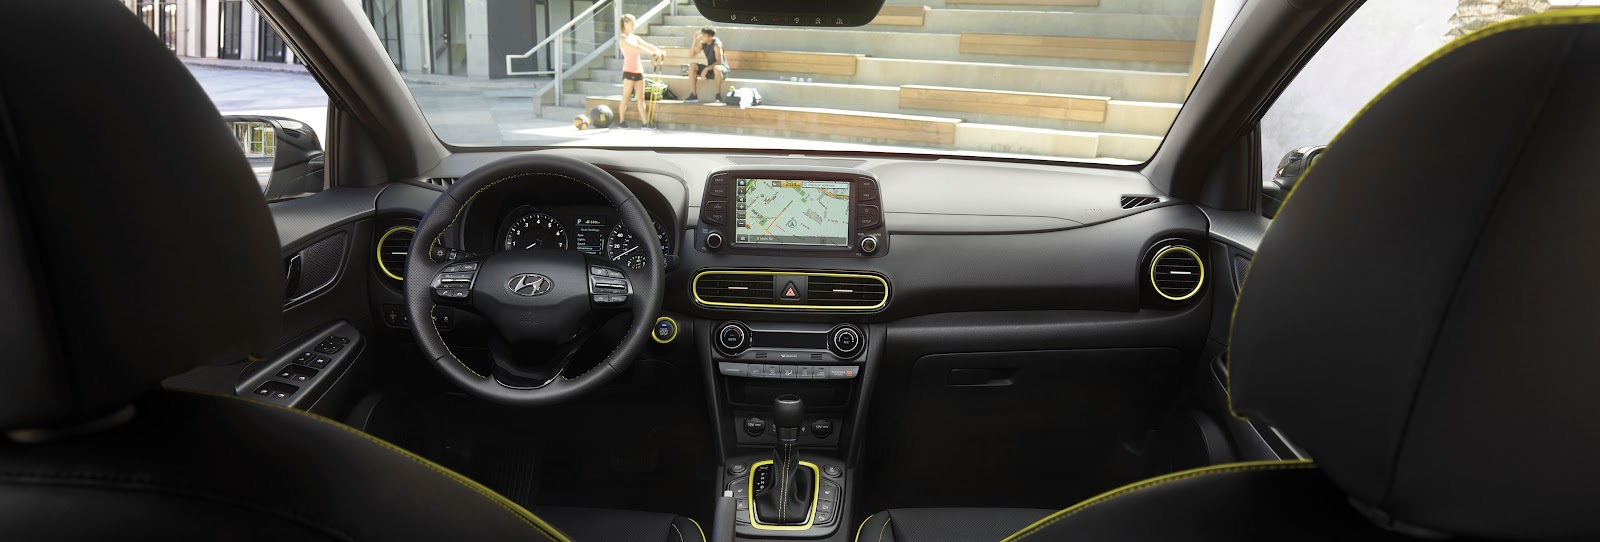 A wide shot of the Kona's interior with bright yellow embellishments